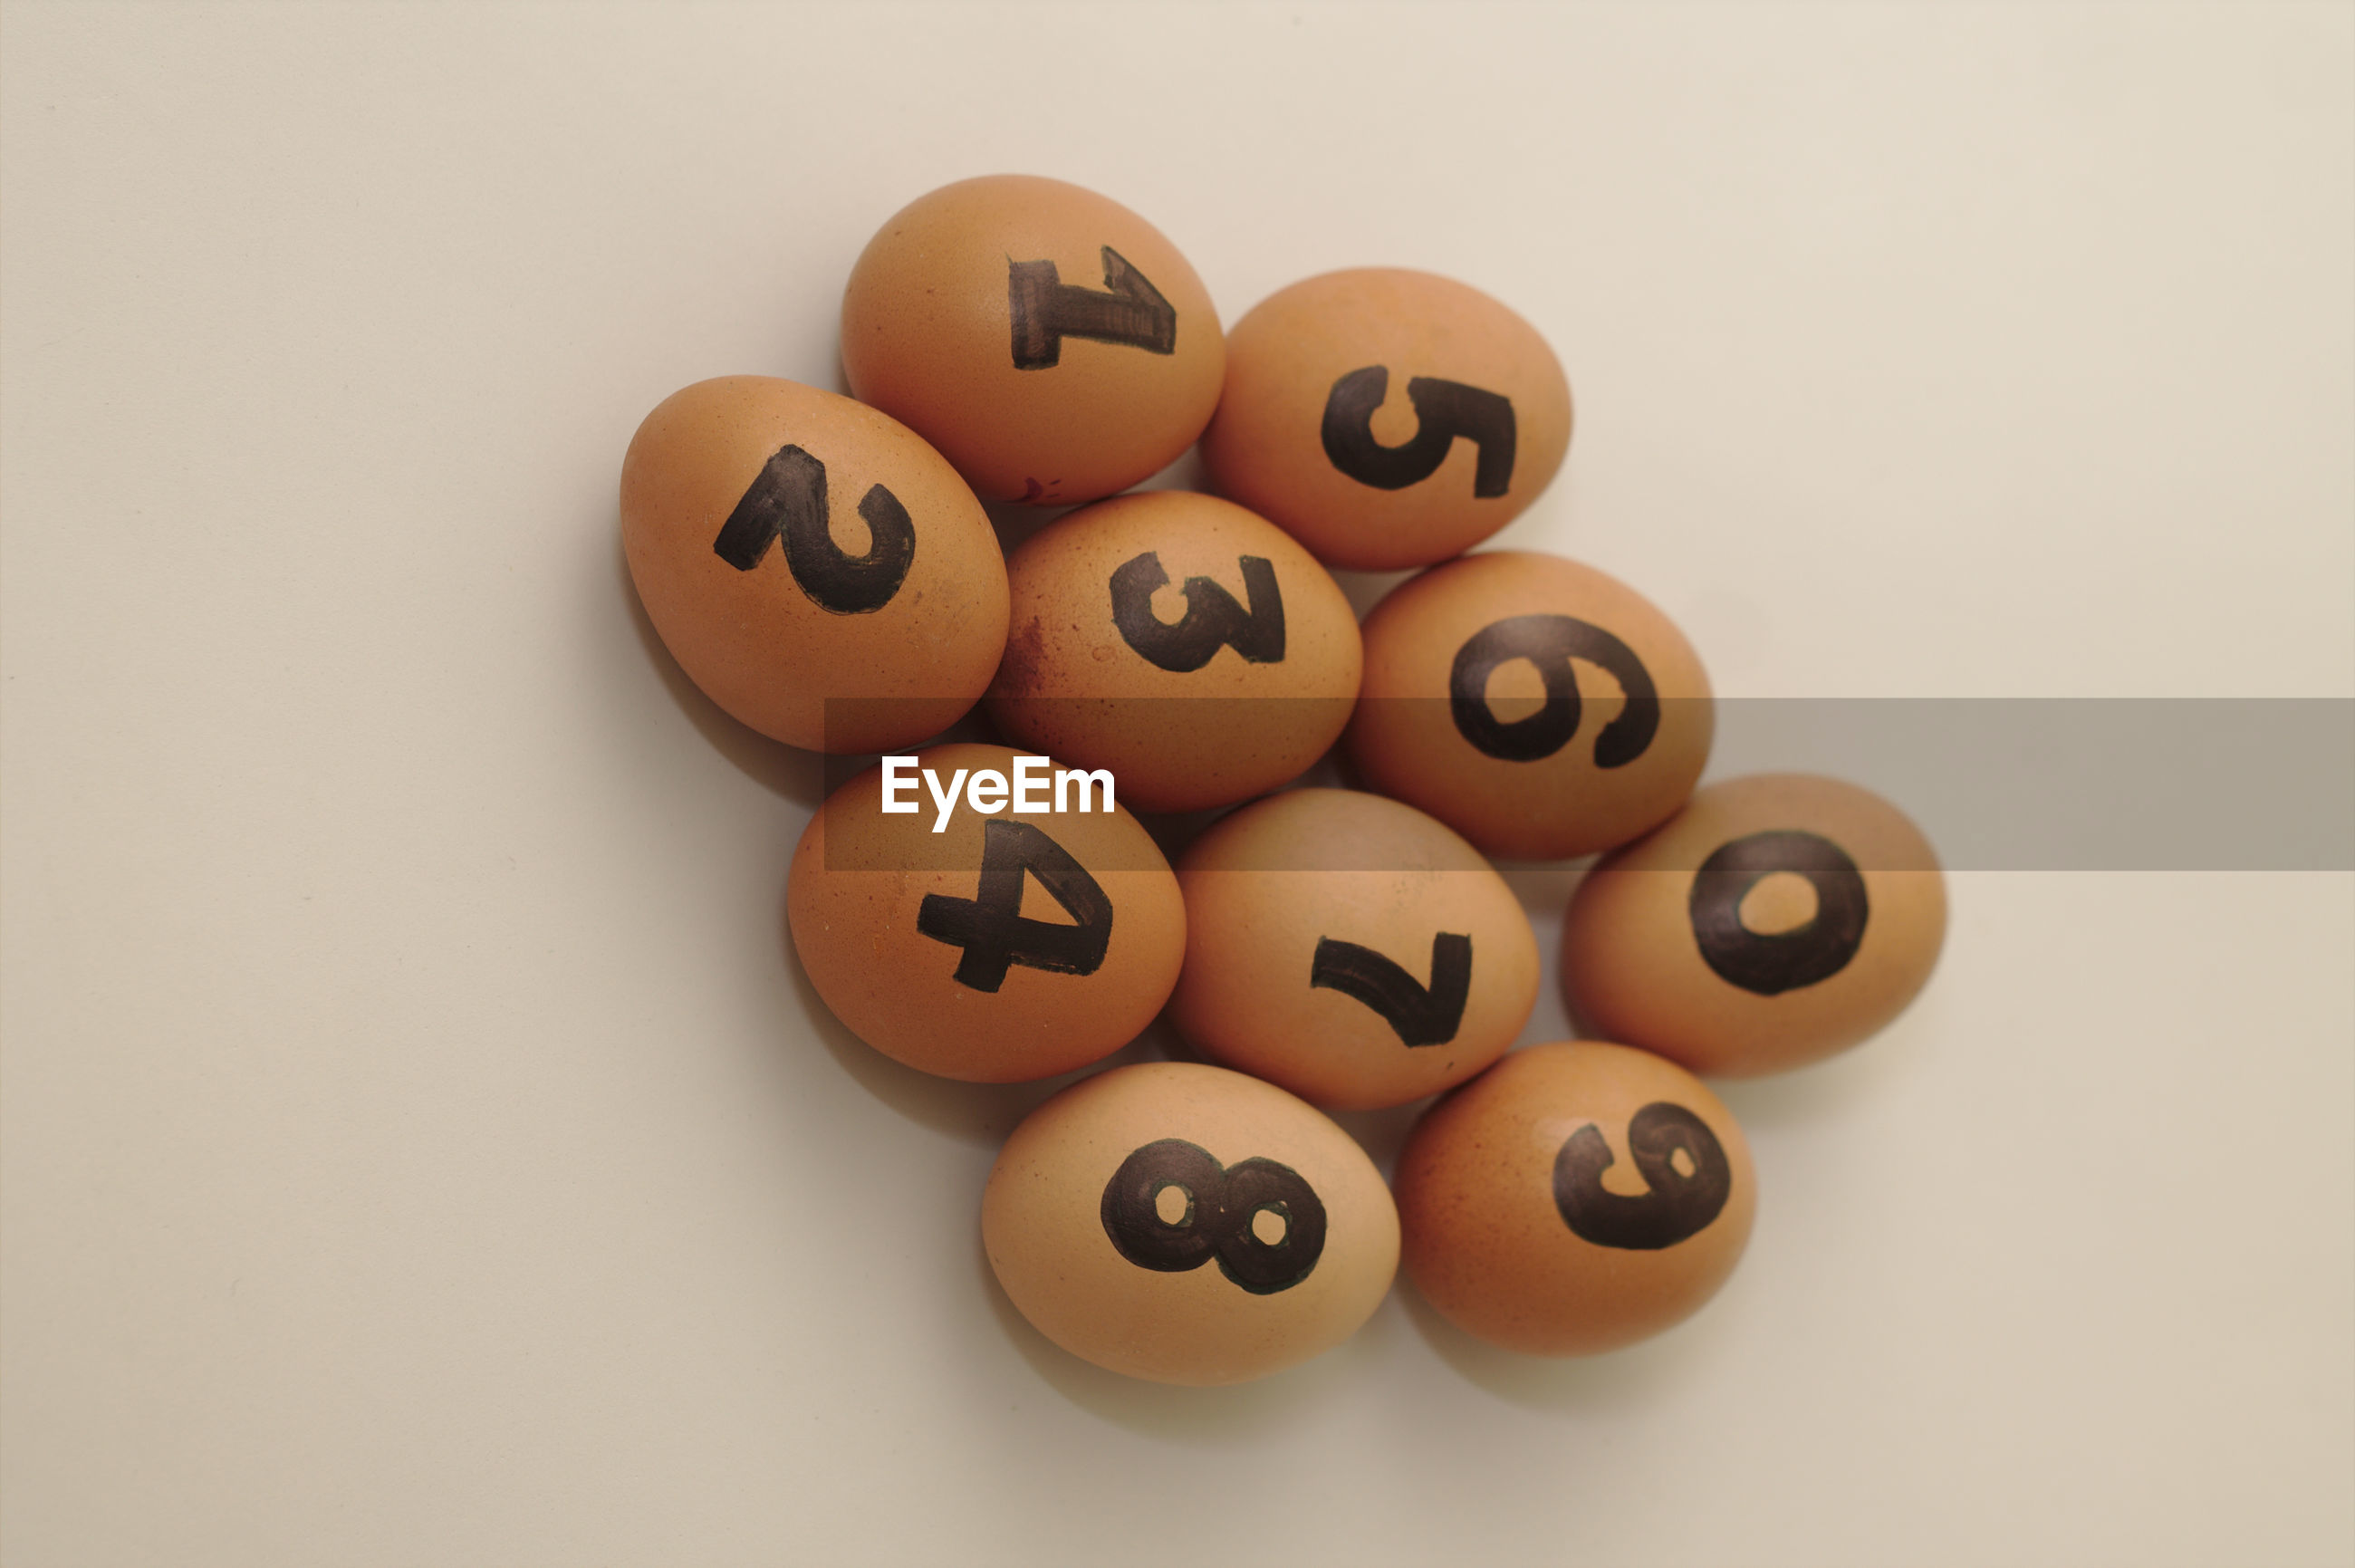 High angle view of eggs against white background